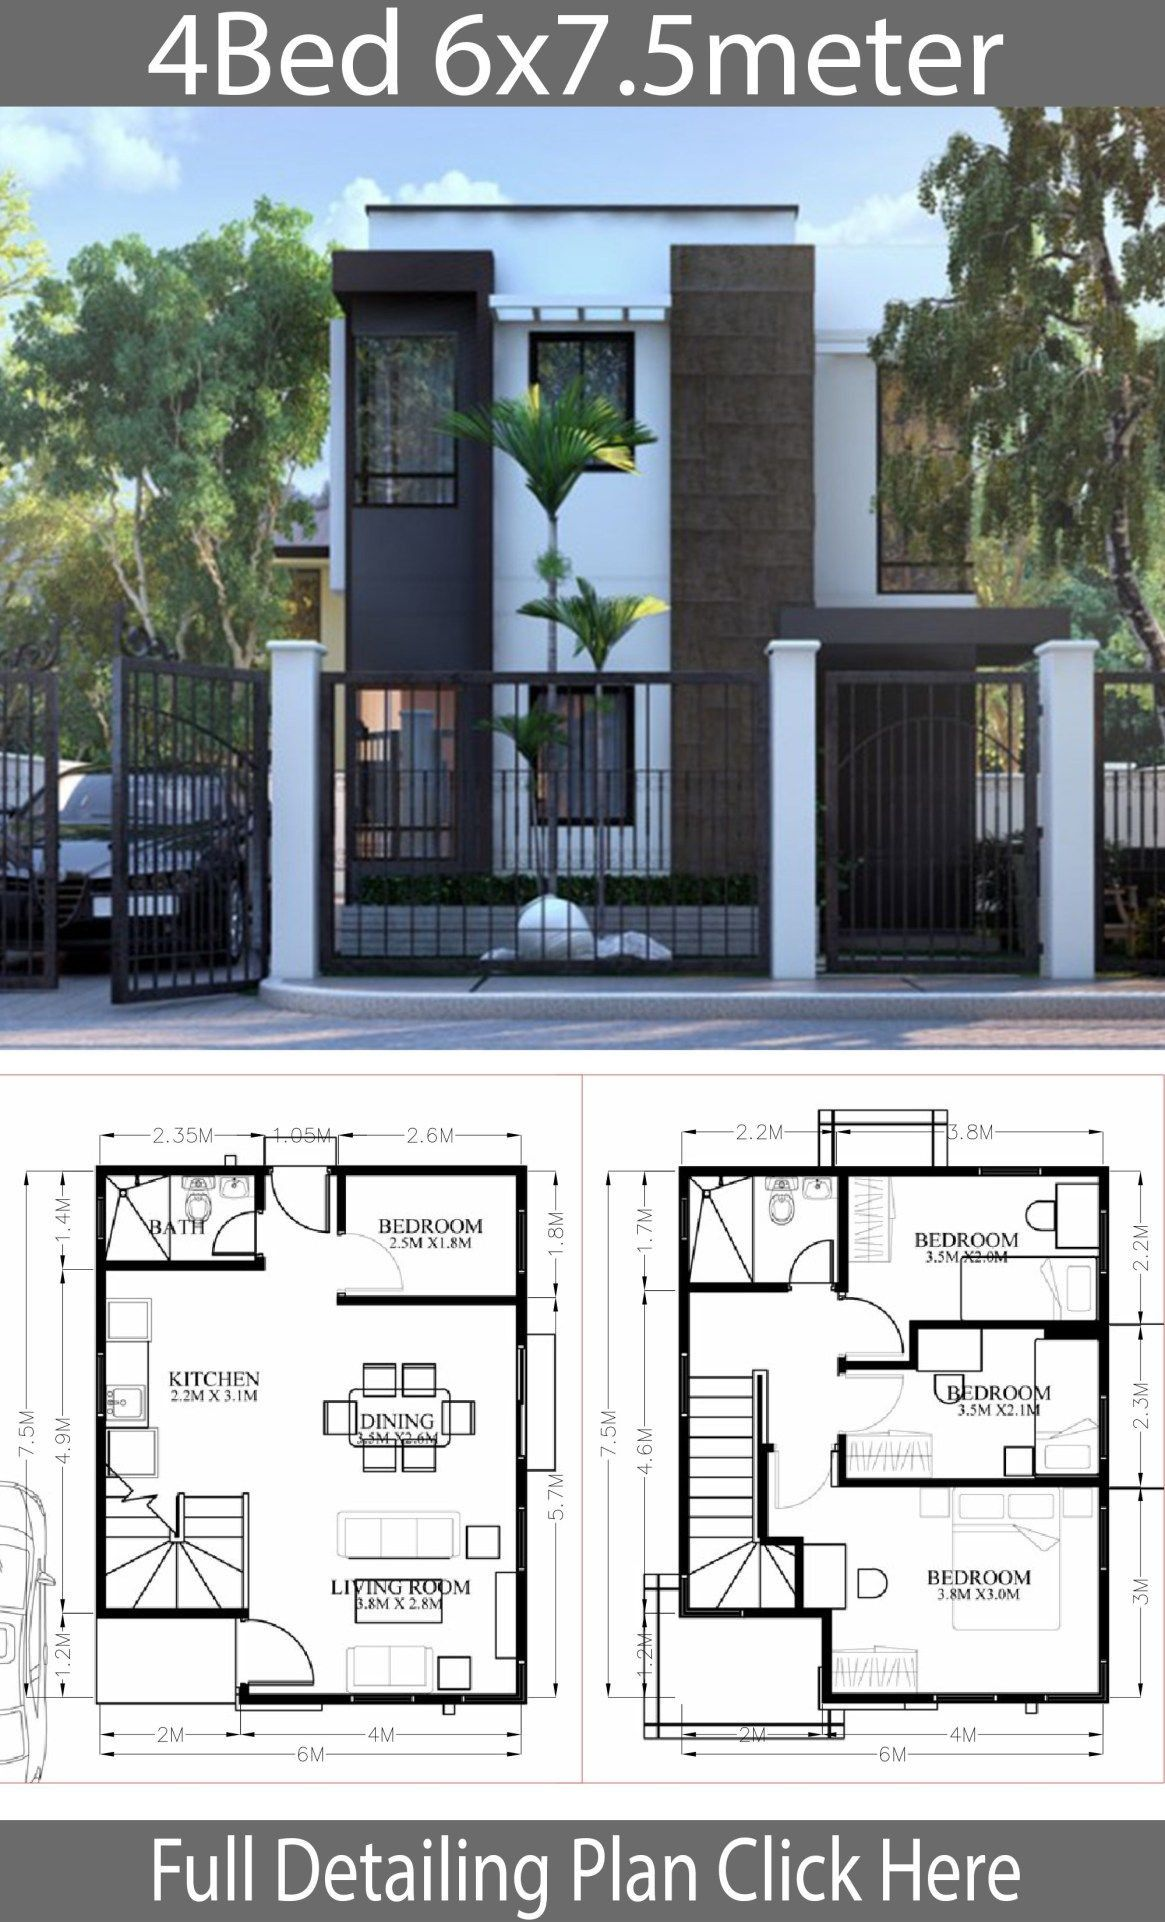 Luxury Modern Small House Ideas Floor Plans Small Home Design Plan 6x7 5m With 4 Bedrooms Arsitektur Minimalis Arsitektur Desain Rumah